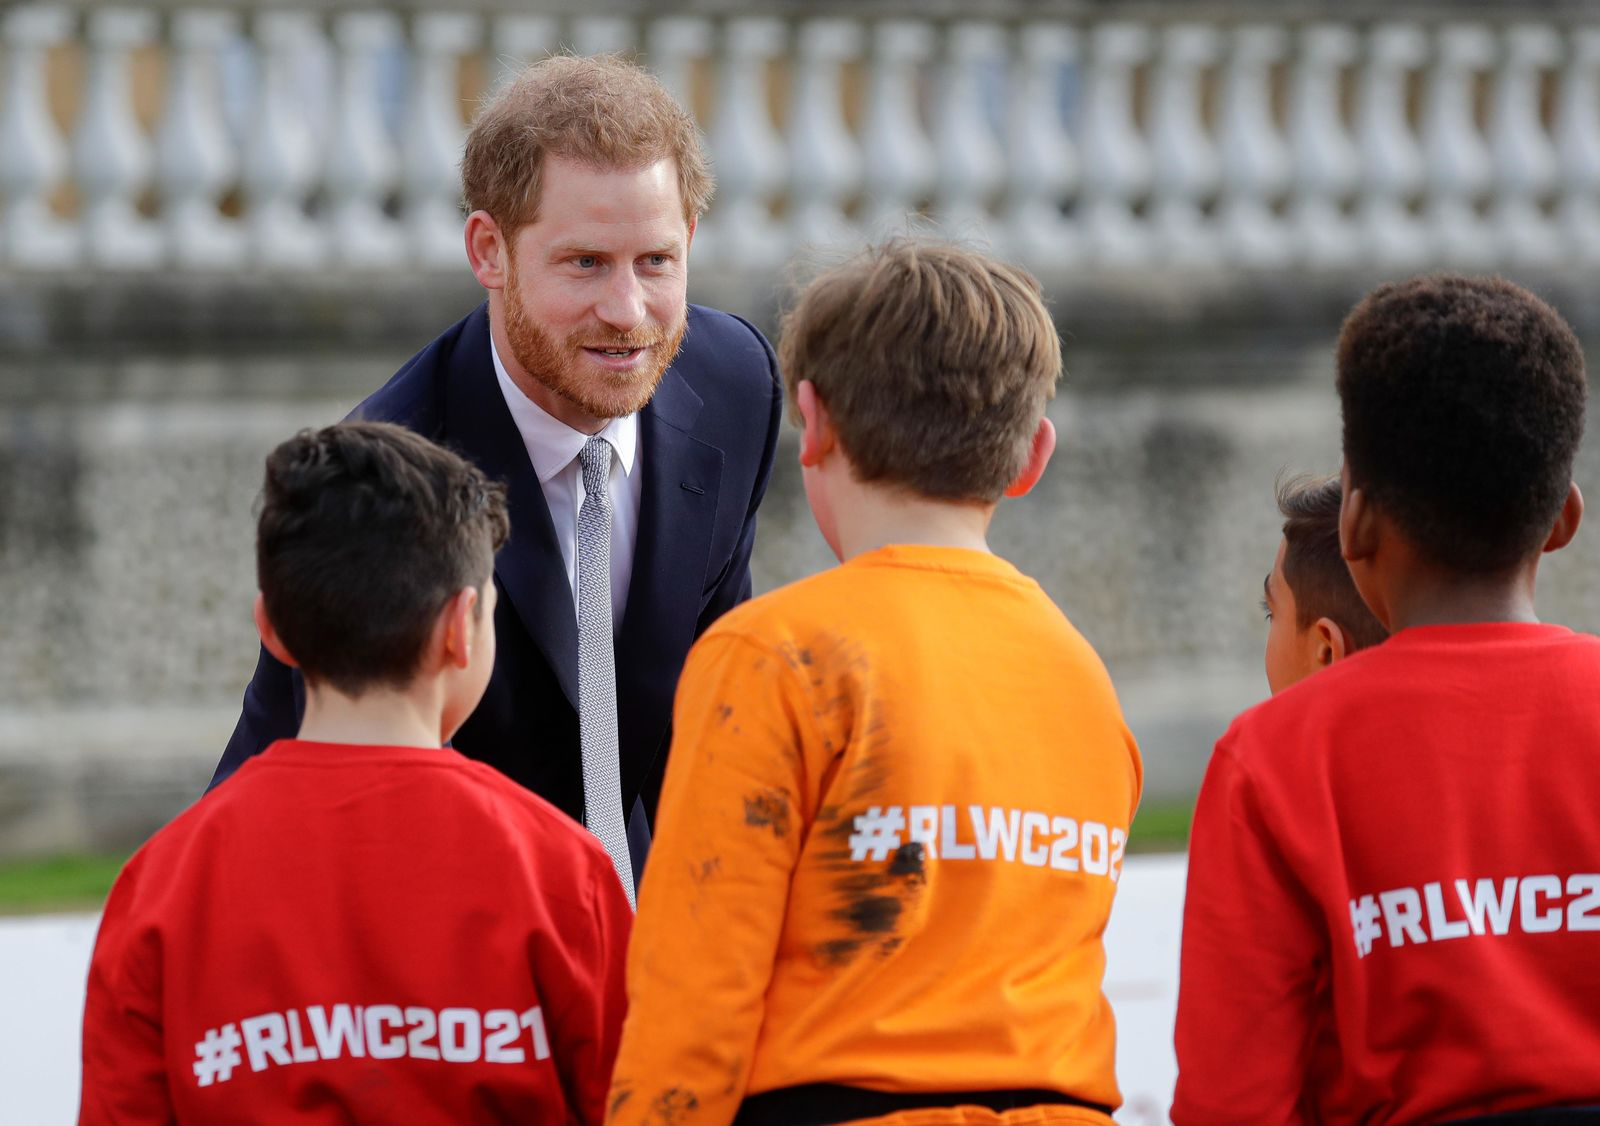 Britain's Prince Harry greets schoolchildren in the gardens at Buckingham Palace in London, Thursday, Jan. 16, 2020.{ } (AP Photo/Kirsty Wigglesworth)